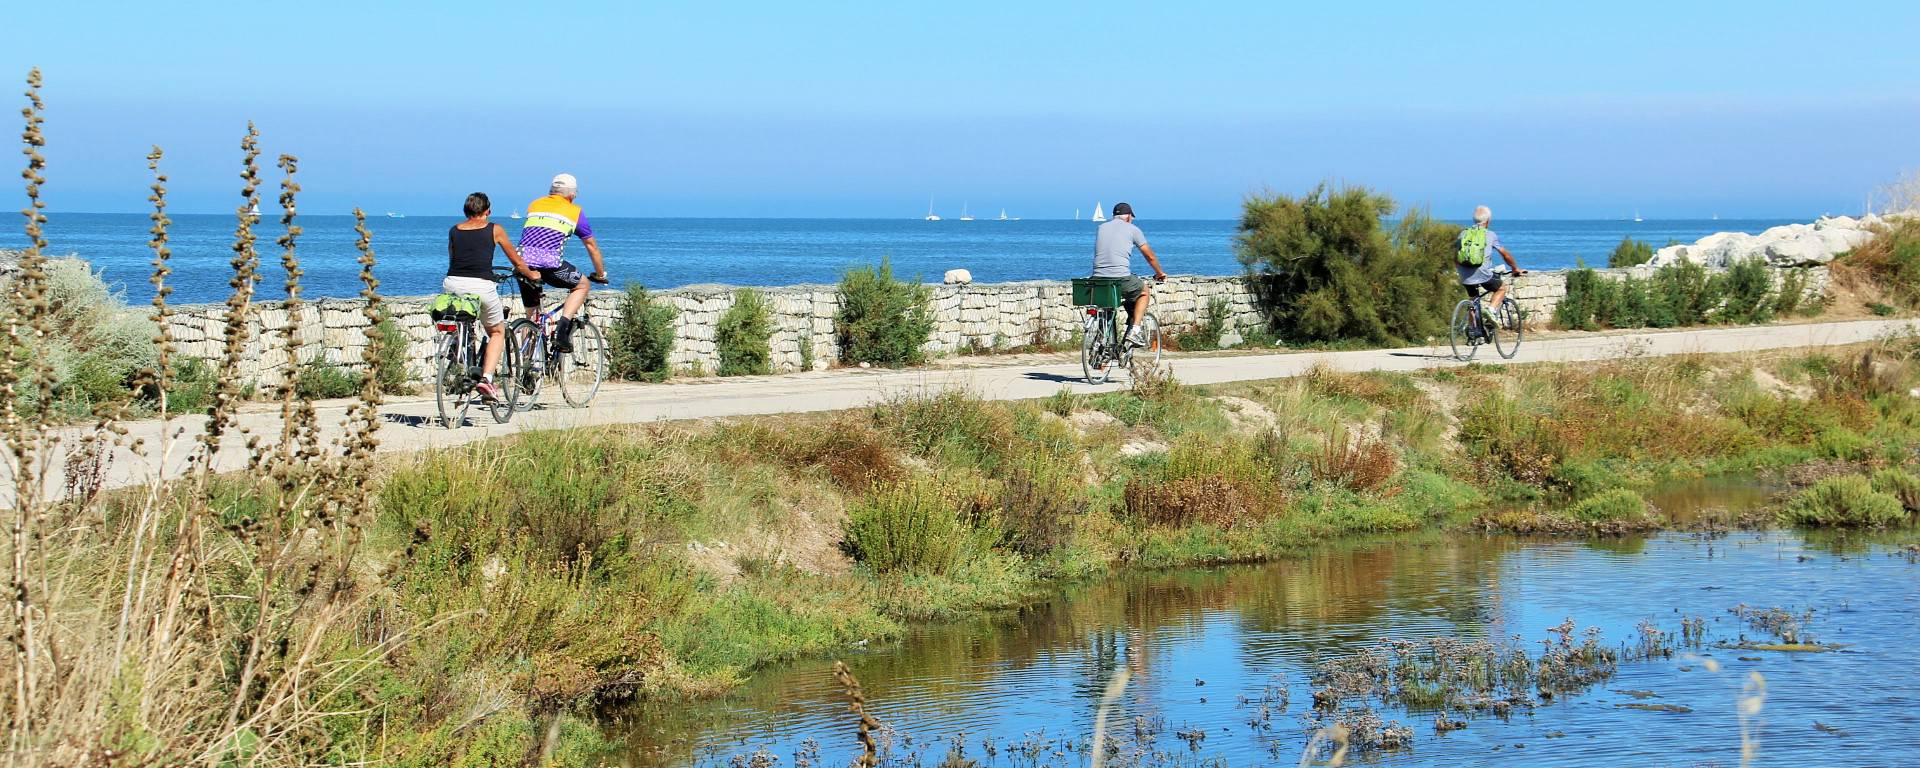 The bike paths on Île de Ré by Lesley Williamson